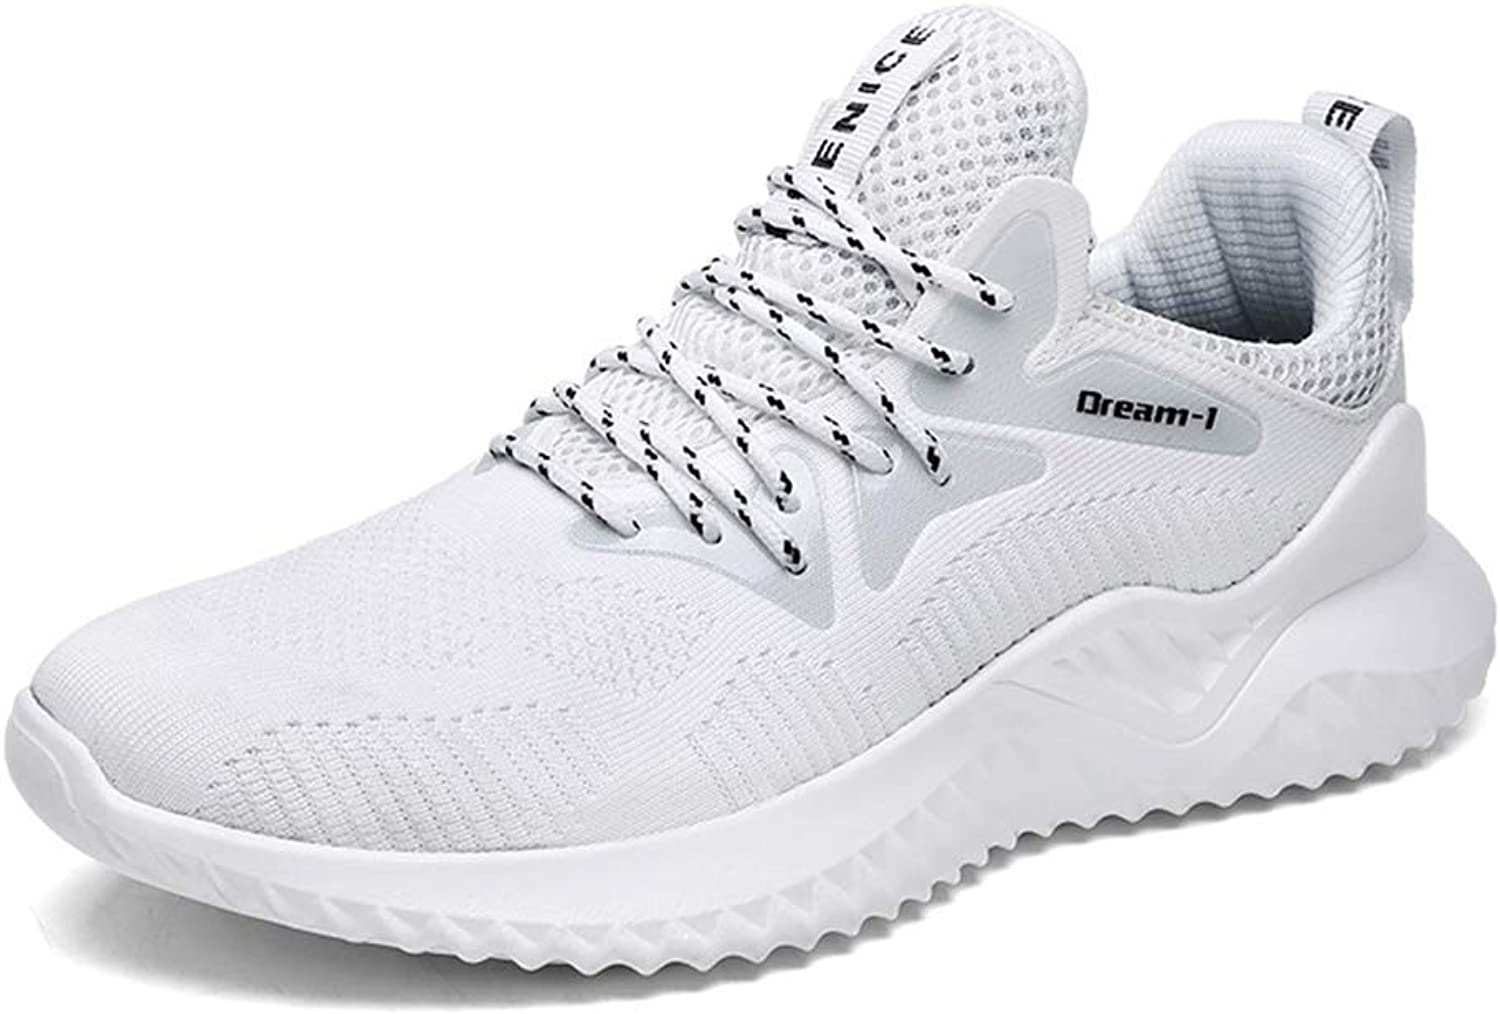 ZHRUI Men shoes Fashion Casual Comfortable Leisure Breathable Footwear Running Sneakers (color   1810white, Size   7.5 UK)